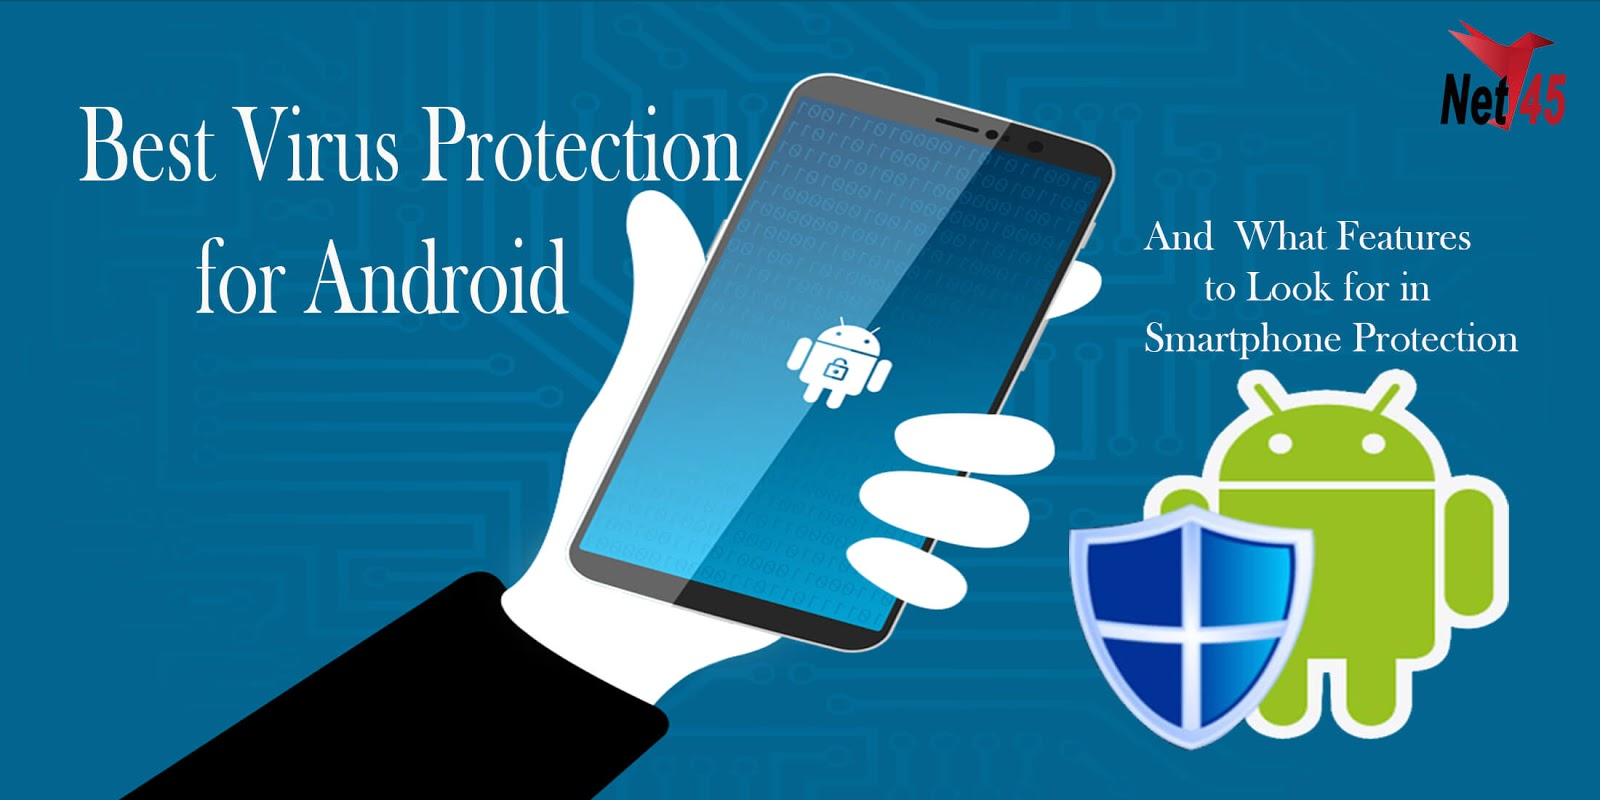 best antivirus for android,android,best free antivirus for android,antivirus for android,android antivirus,virus,android protection,best antivirus protection for android,smartphone,best antivirus protection for iphone,smartphone virus,best antivirus protection for 2018,android security,best antivirus for smartphone,the best antivirus for android phones,anti virus for android phones